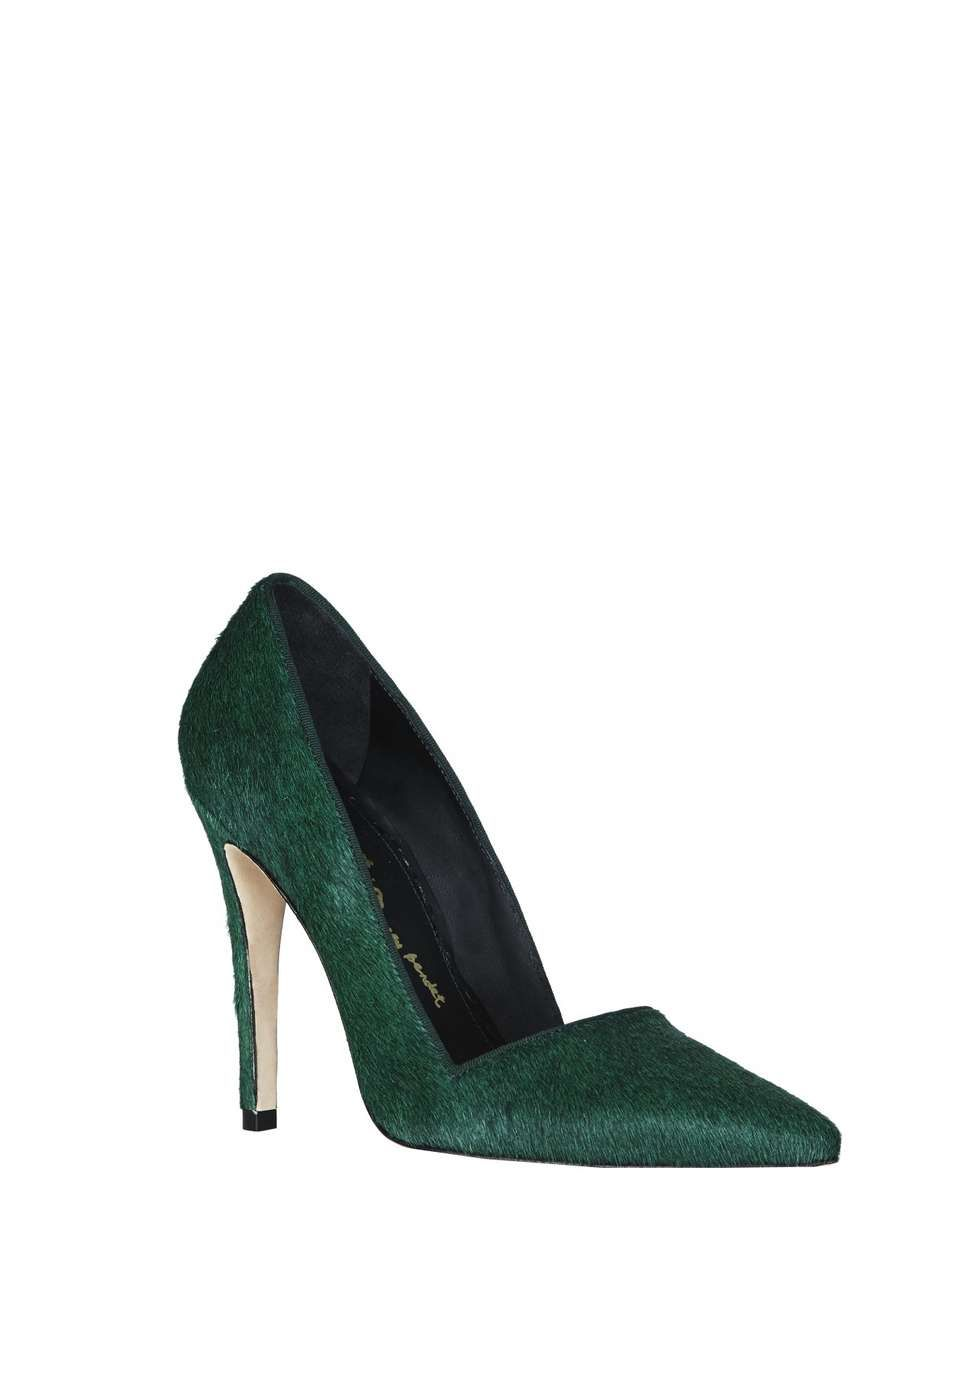 Love the Alice+Olivia DINA CALF HAIR HEEL on Wantering | skyhigh heels | womens pumps | womens shoes | fashion | style | trends | wantering http://www.wantering.com/womens-clothing-item/dina-calf-hair-heel/af7Ue/